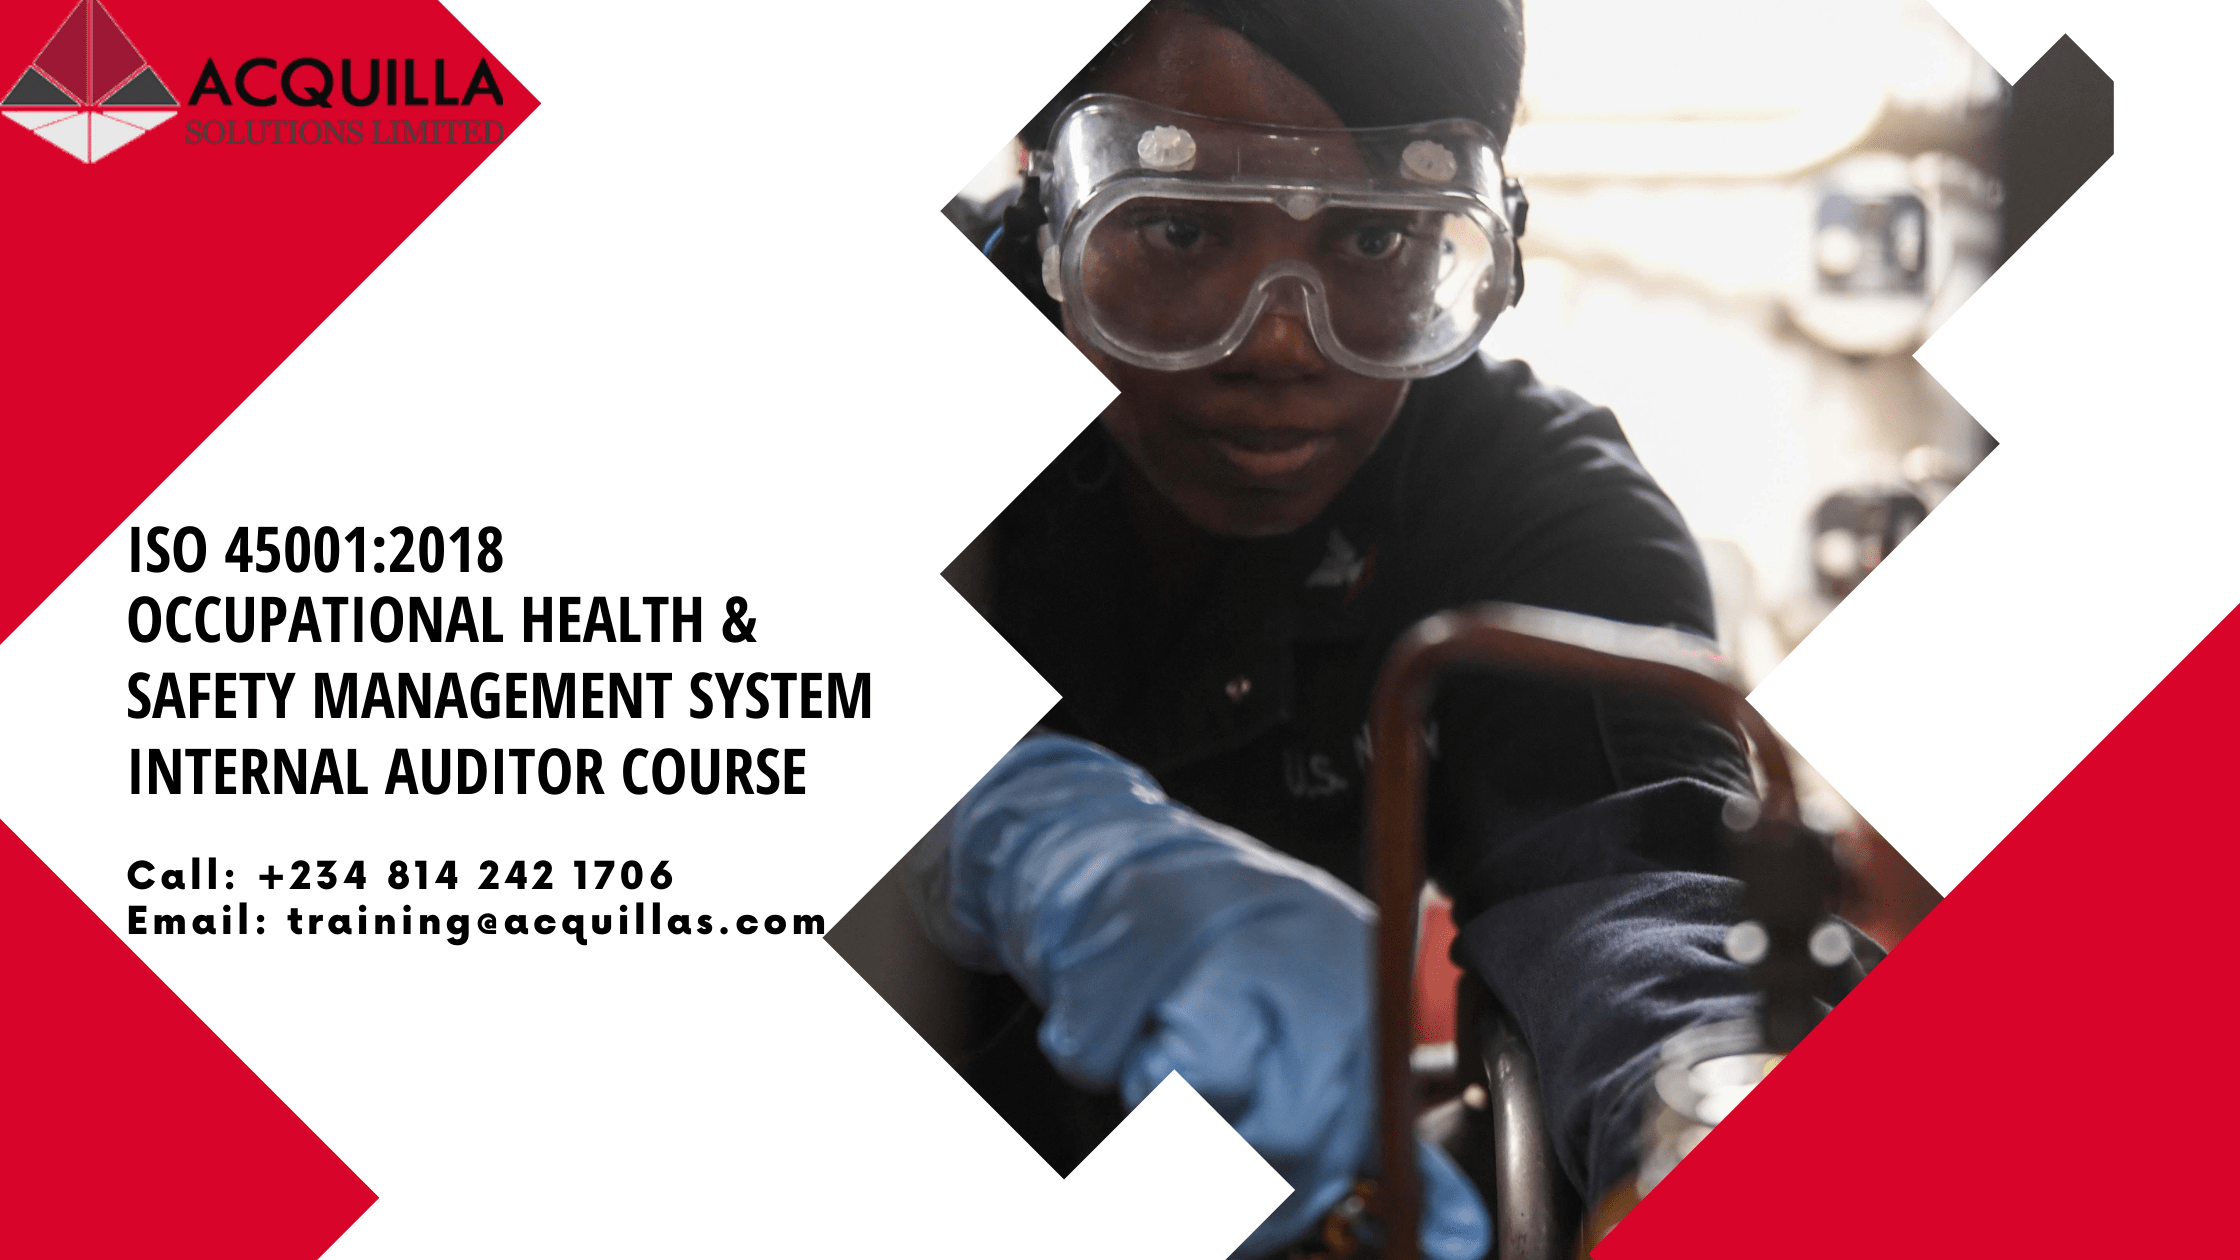 Health and Safety Courses in Lagos Iso Osh 45001 2018 Internal Auditor 2021